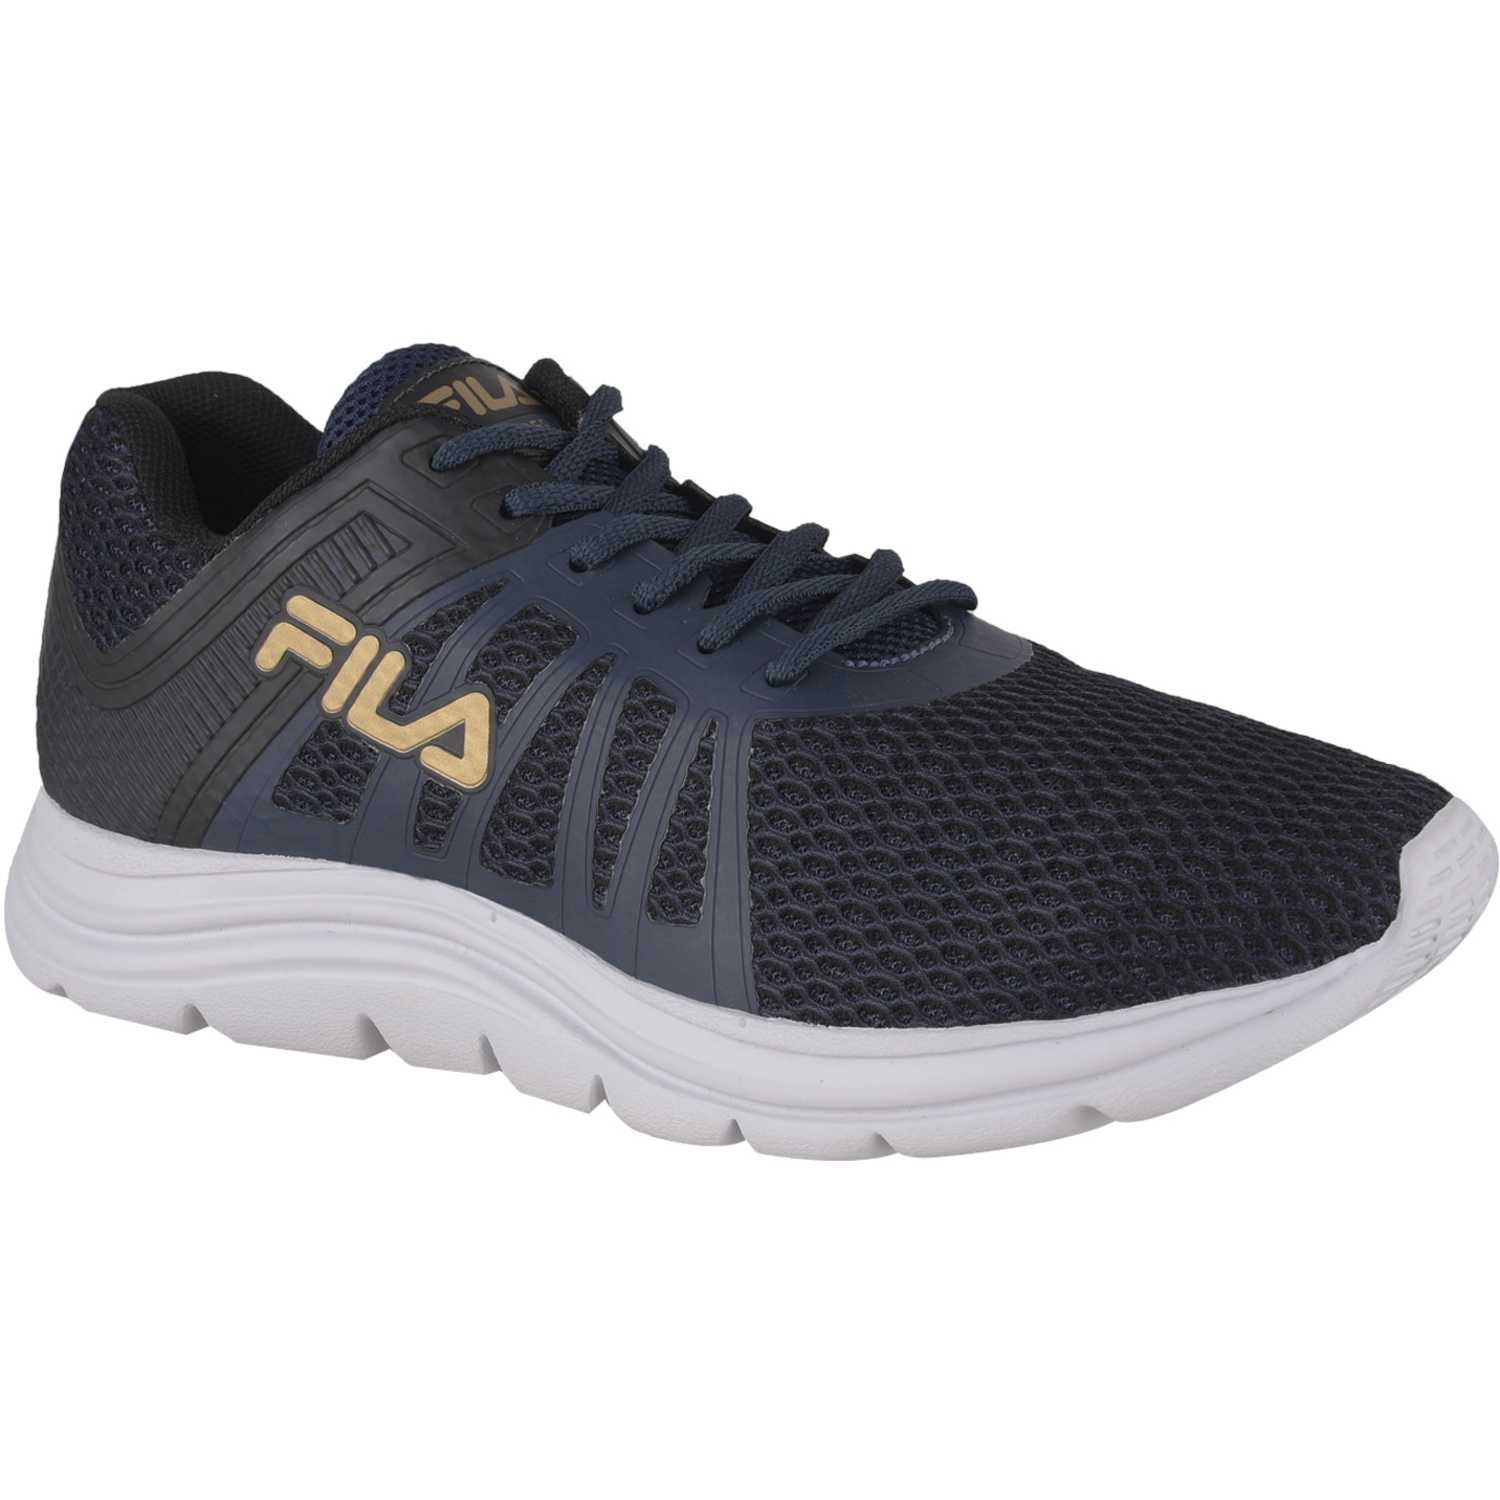 Fila FILA FINDER AZUL / DORADO Walking